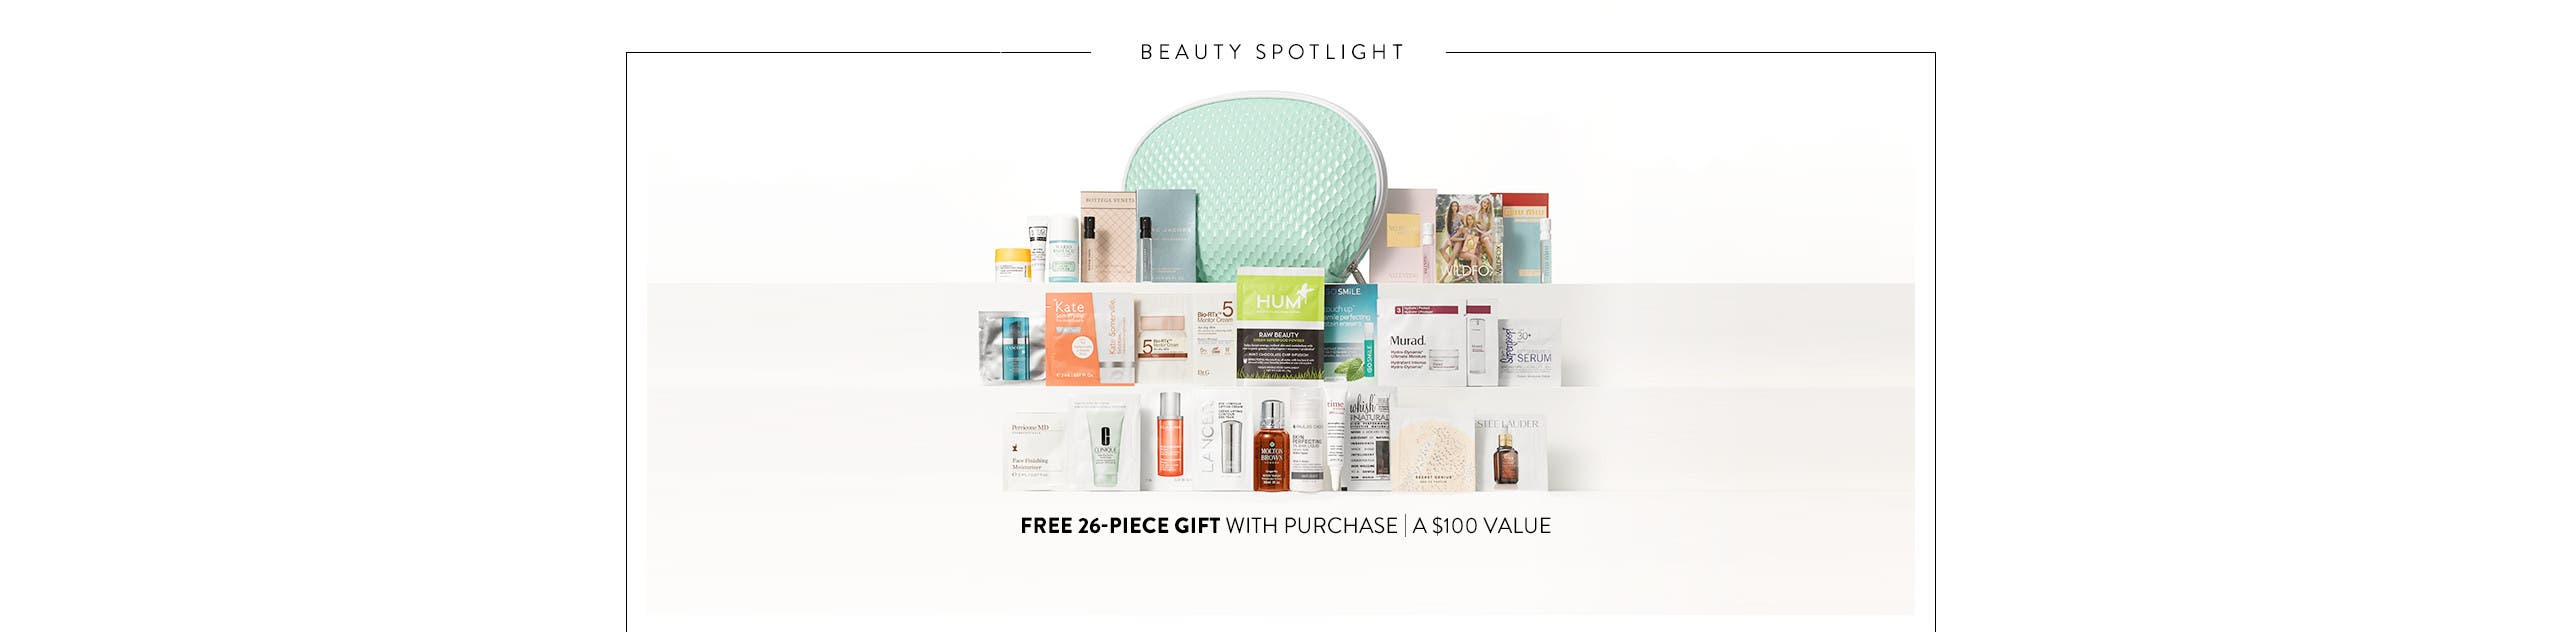 Free 26-piece gift with purchase. A $100 value.